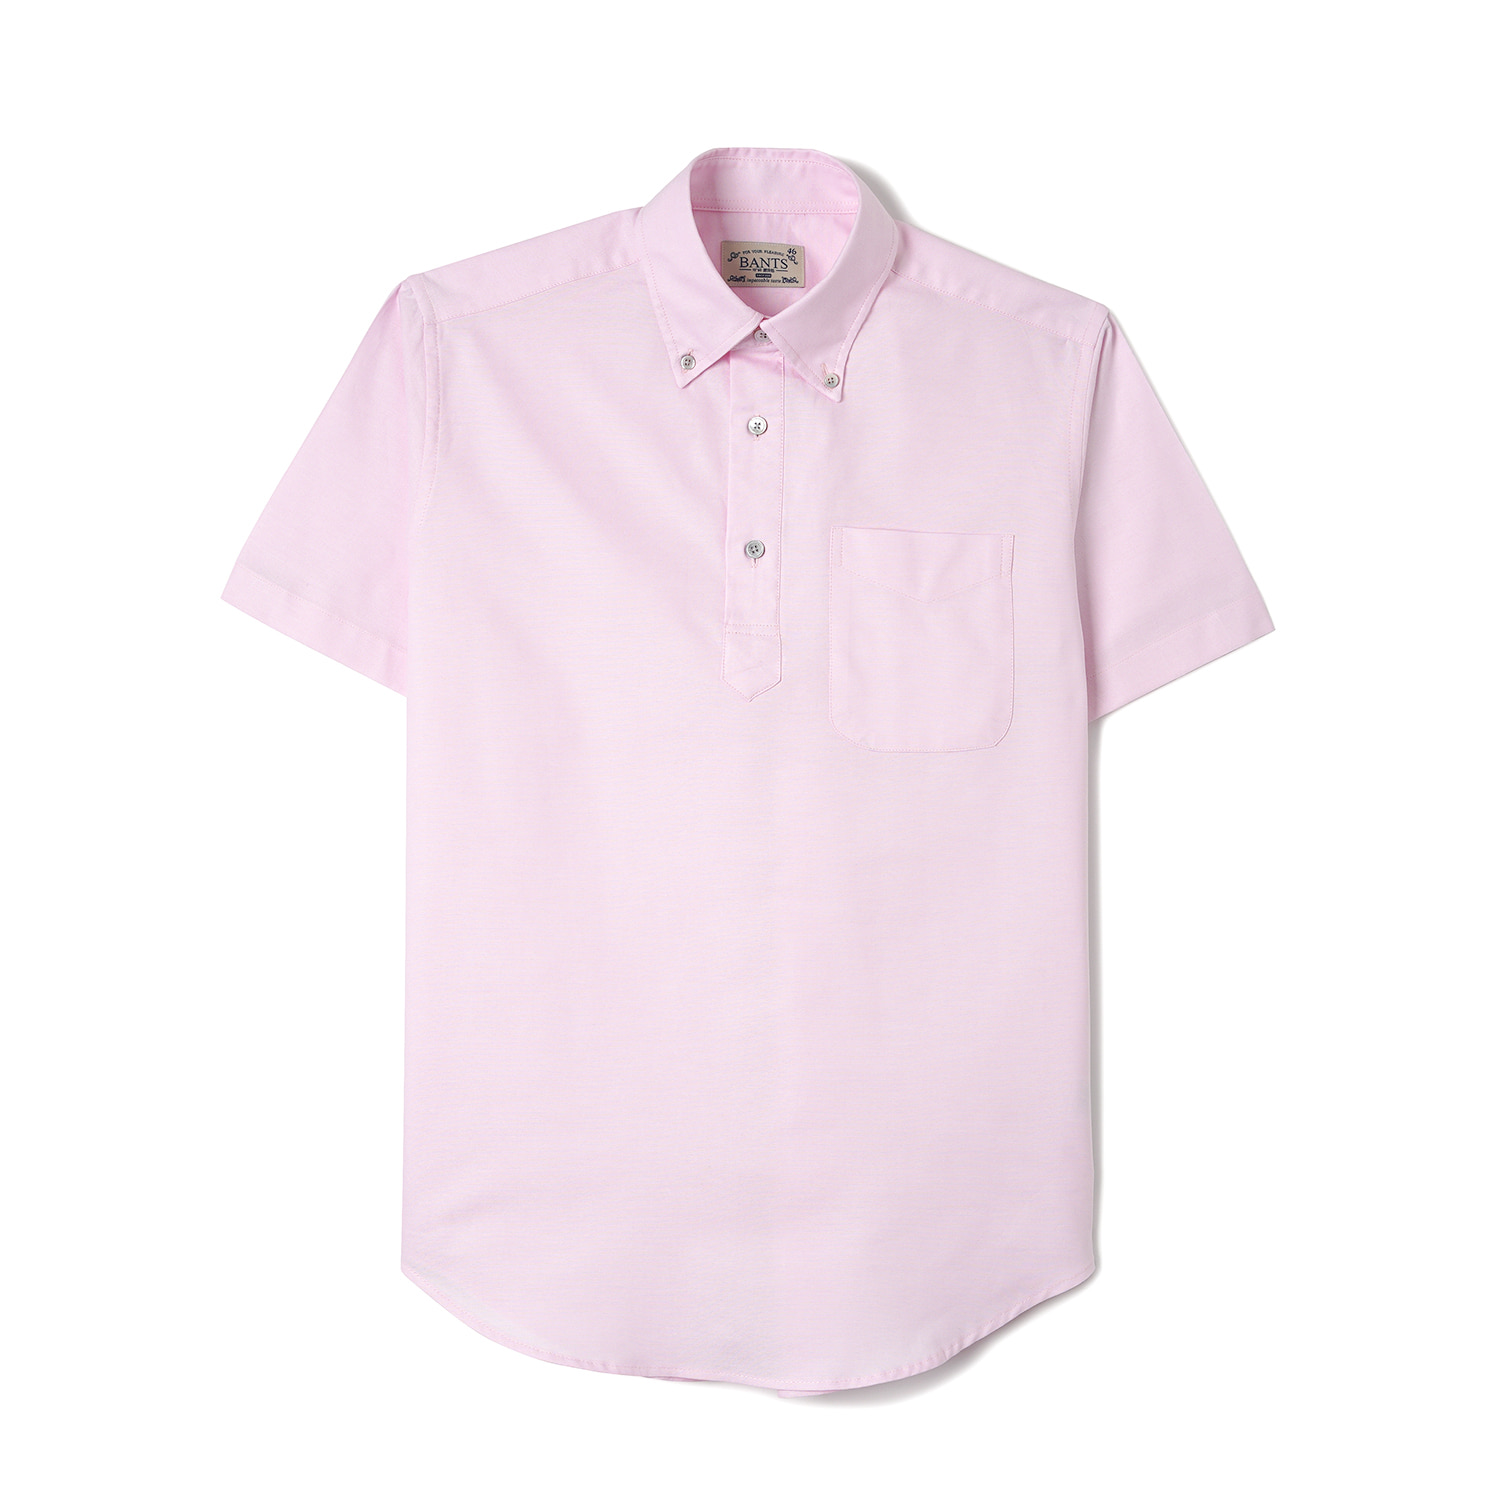 WSK Solid Oxford Pullover B.D Shirt Half - PinkBANTS(반츠)